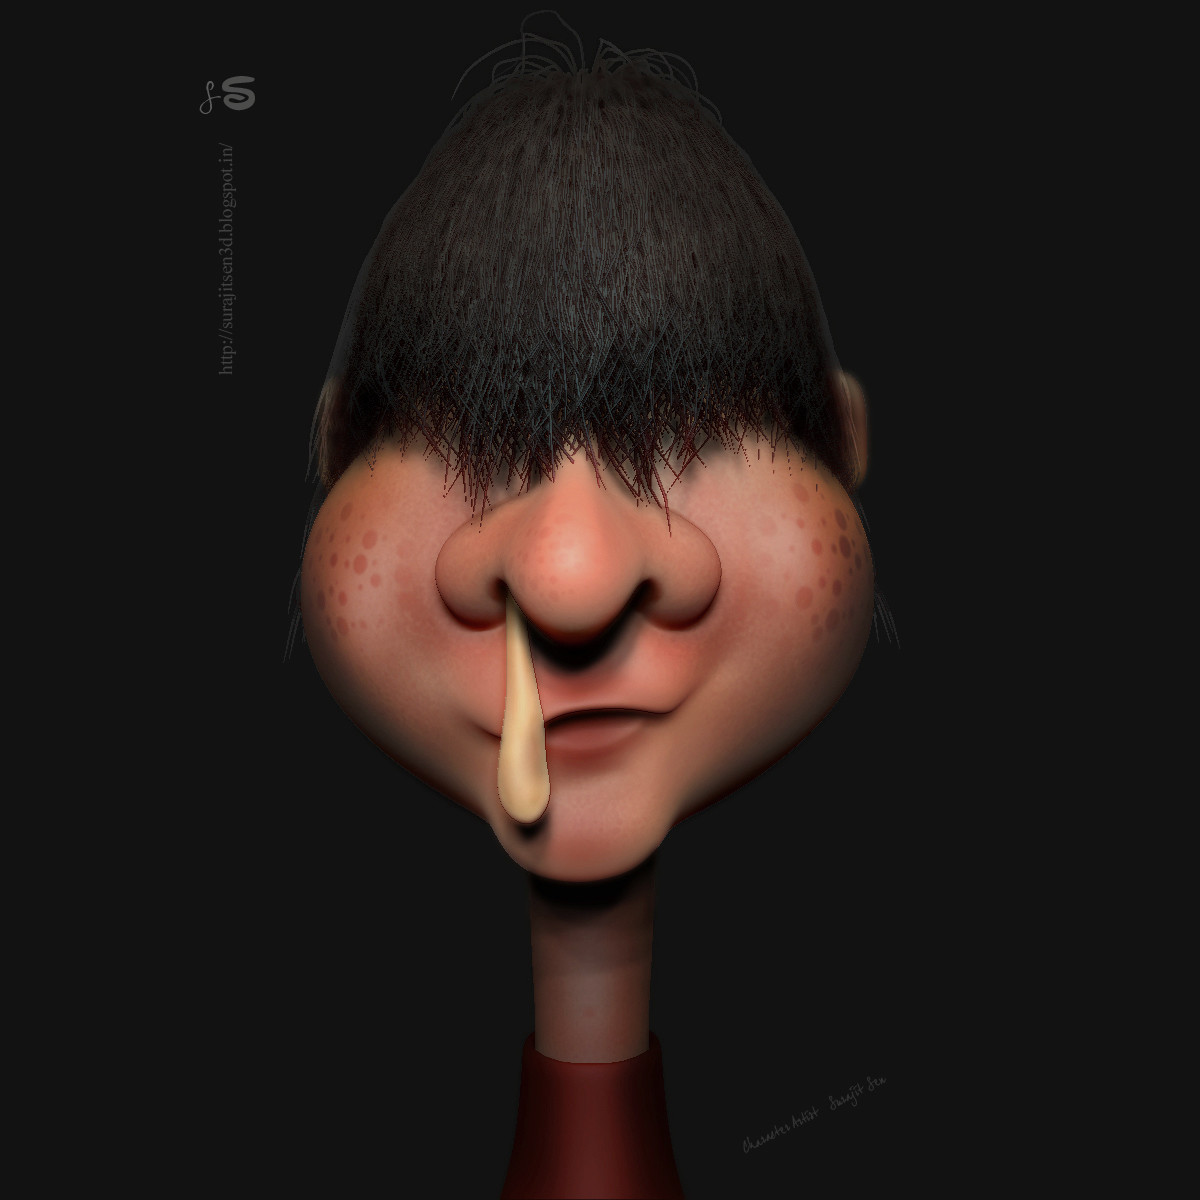 #doodle  #quicksculpt My Weekend doodle ........fun with brushes!...;) Sorry for the concept!